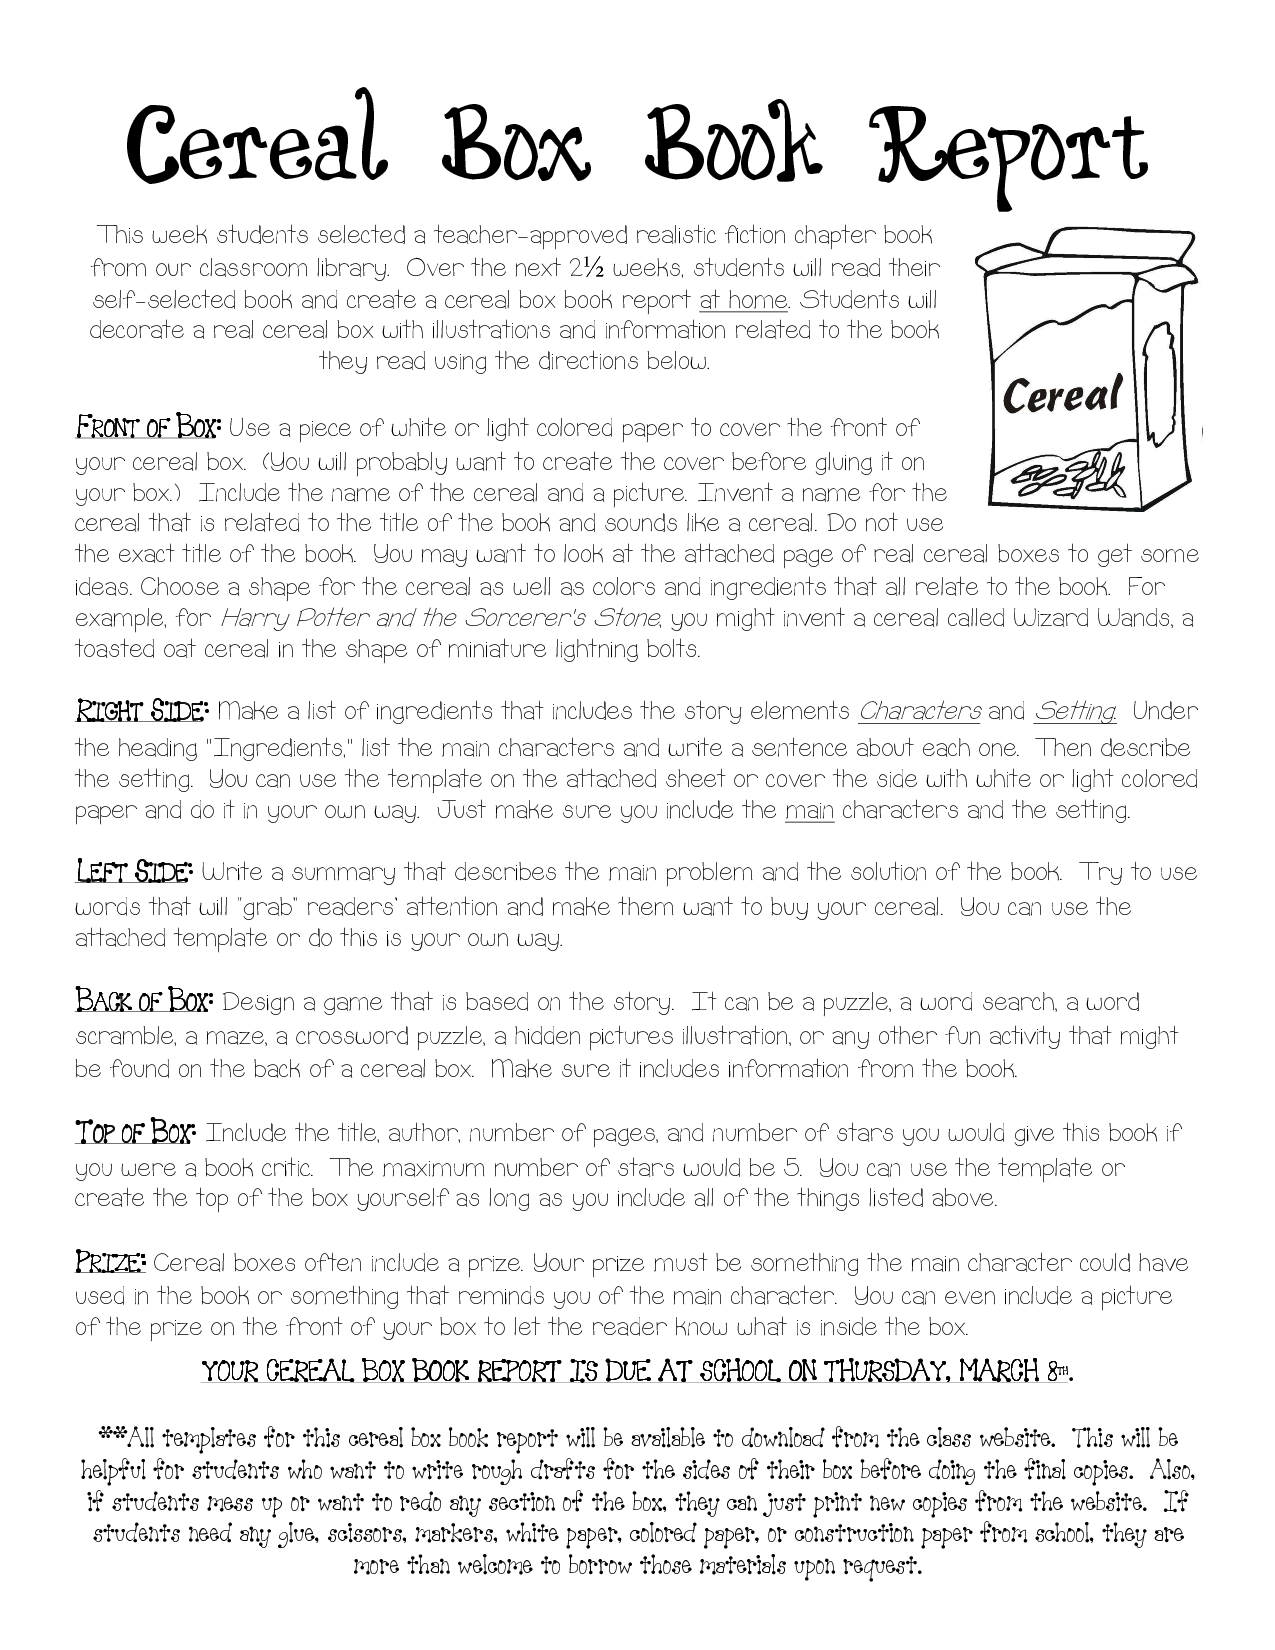 17 Best images about Cereal Box Book Report – Cereal Box Book Report Template